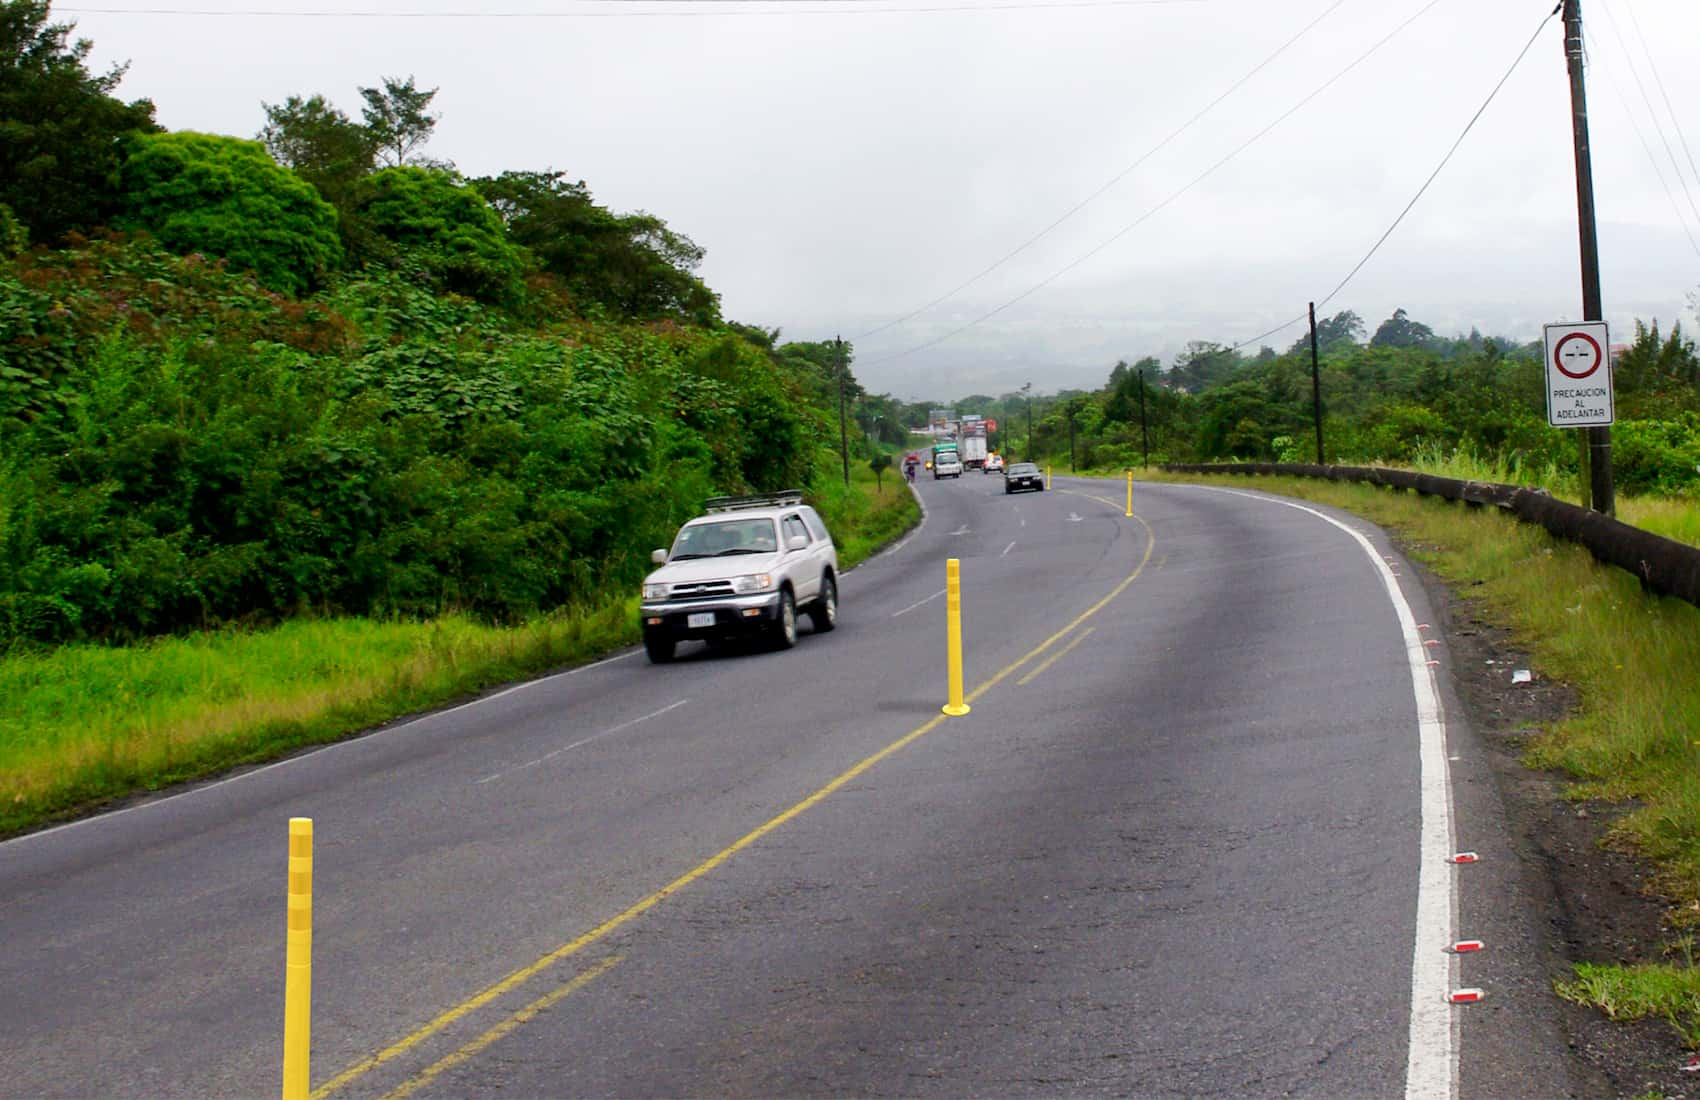 Workers will install plastic poles to divide lanes and discourage illegal passing.